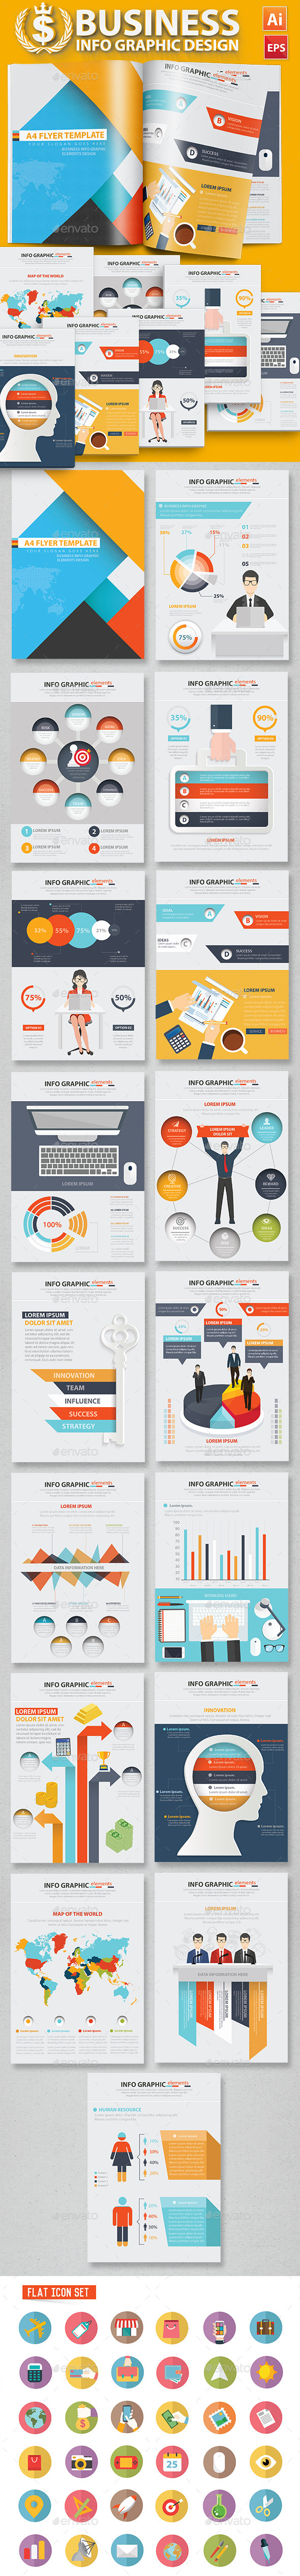 Business Infographic Design 17 Pages - Infographics